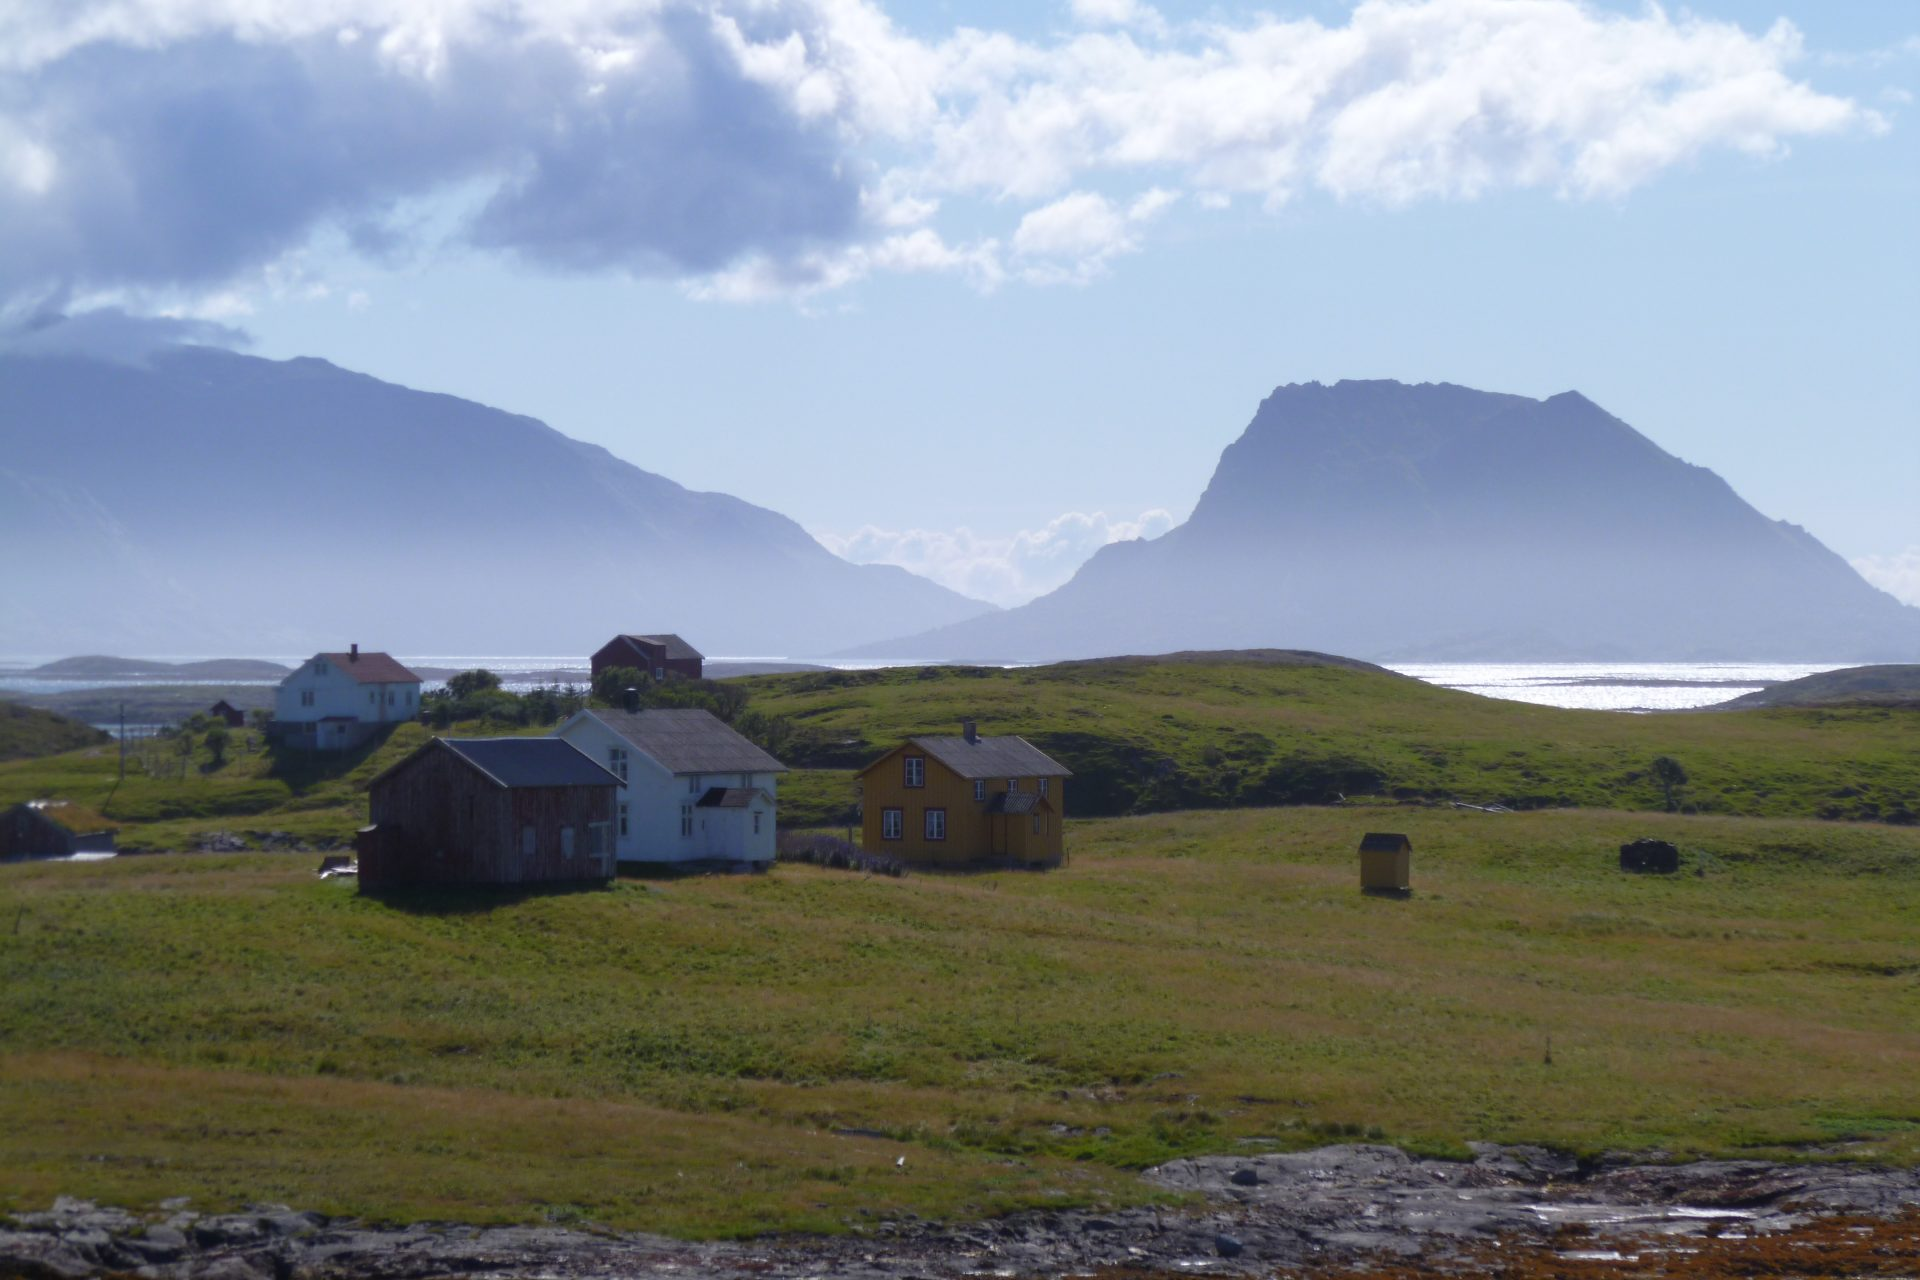 Picture of the Vega houses. Photo by J.H. Jørgensen, the Directorate for Cultural Heritage